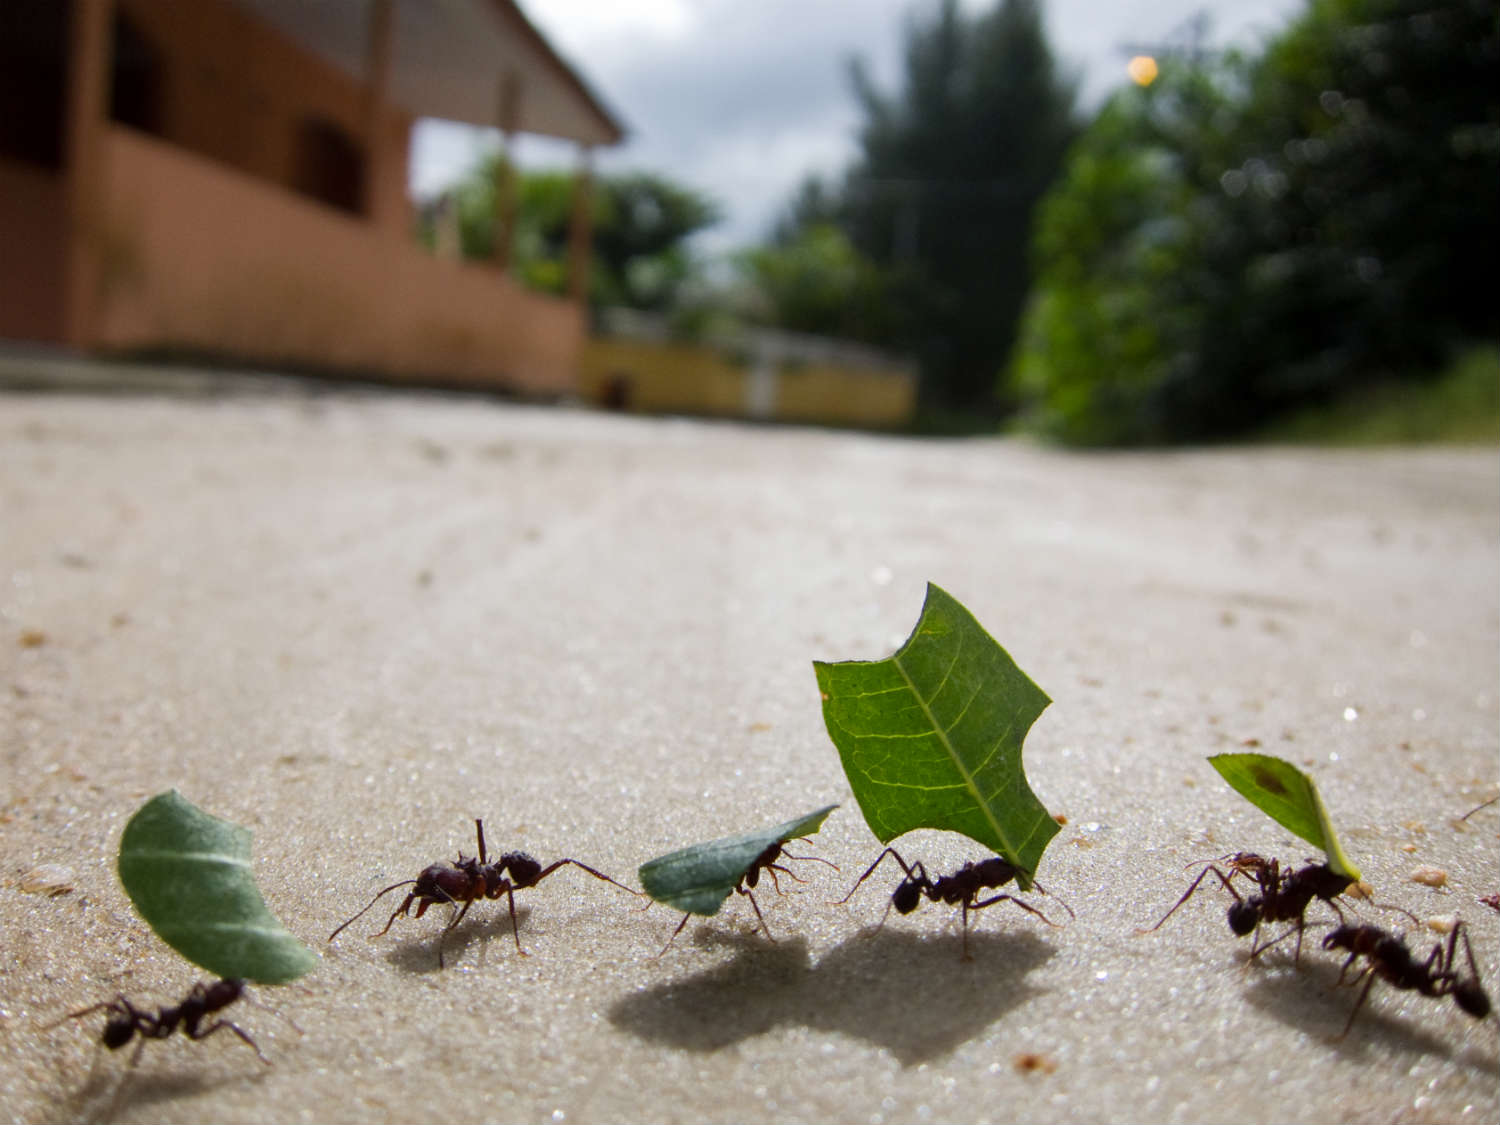 As a collective, ants are efficient and surprisingly intelligent